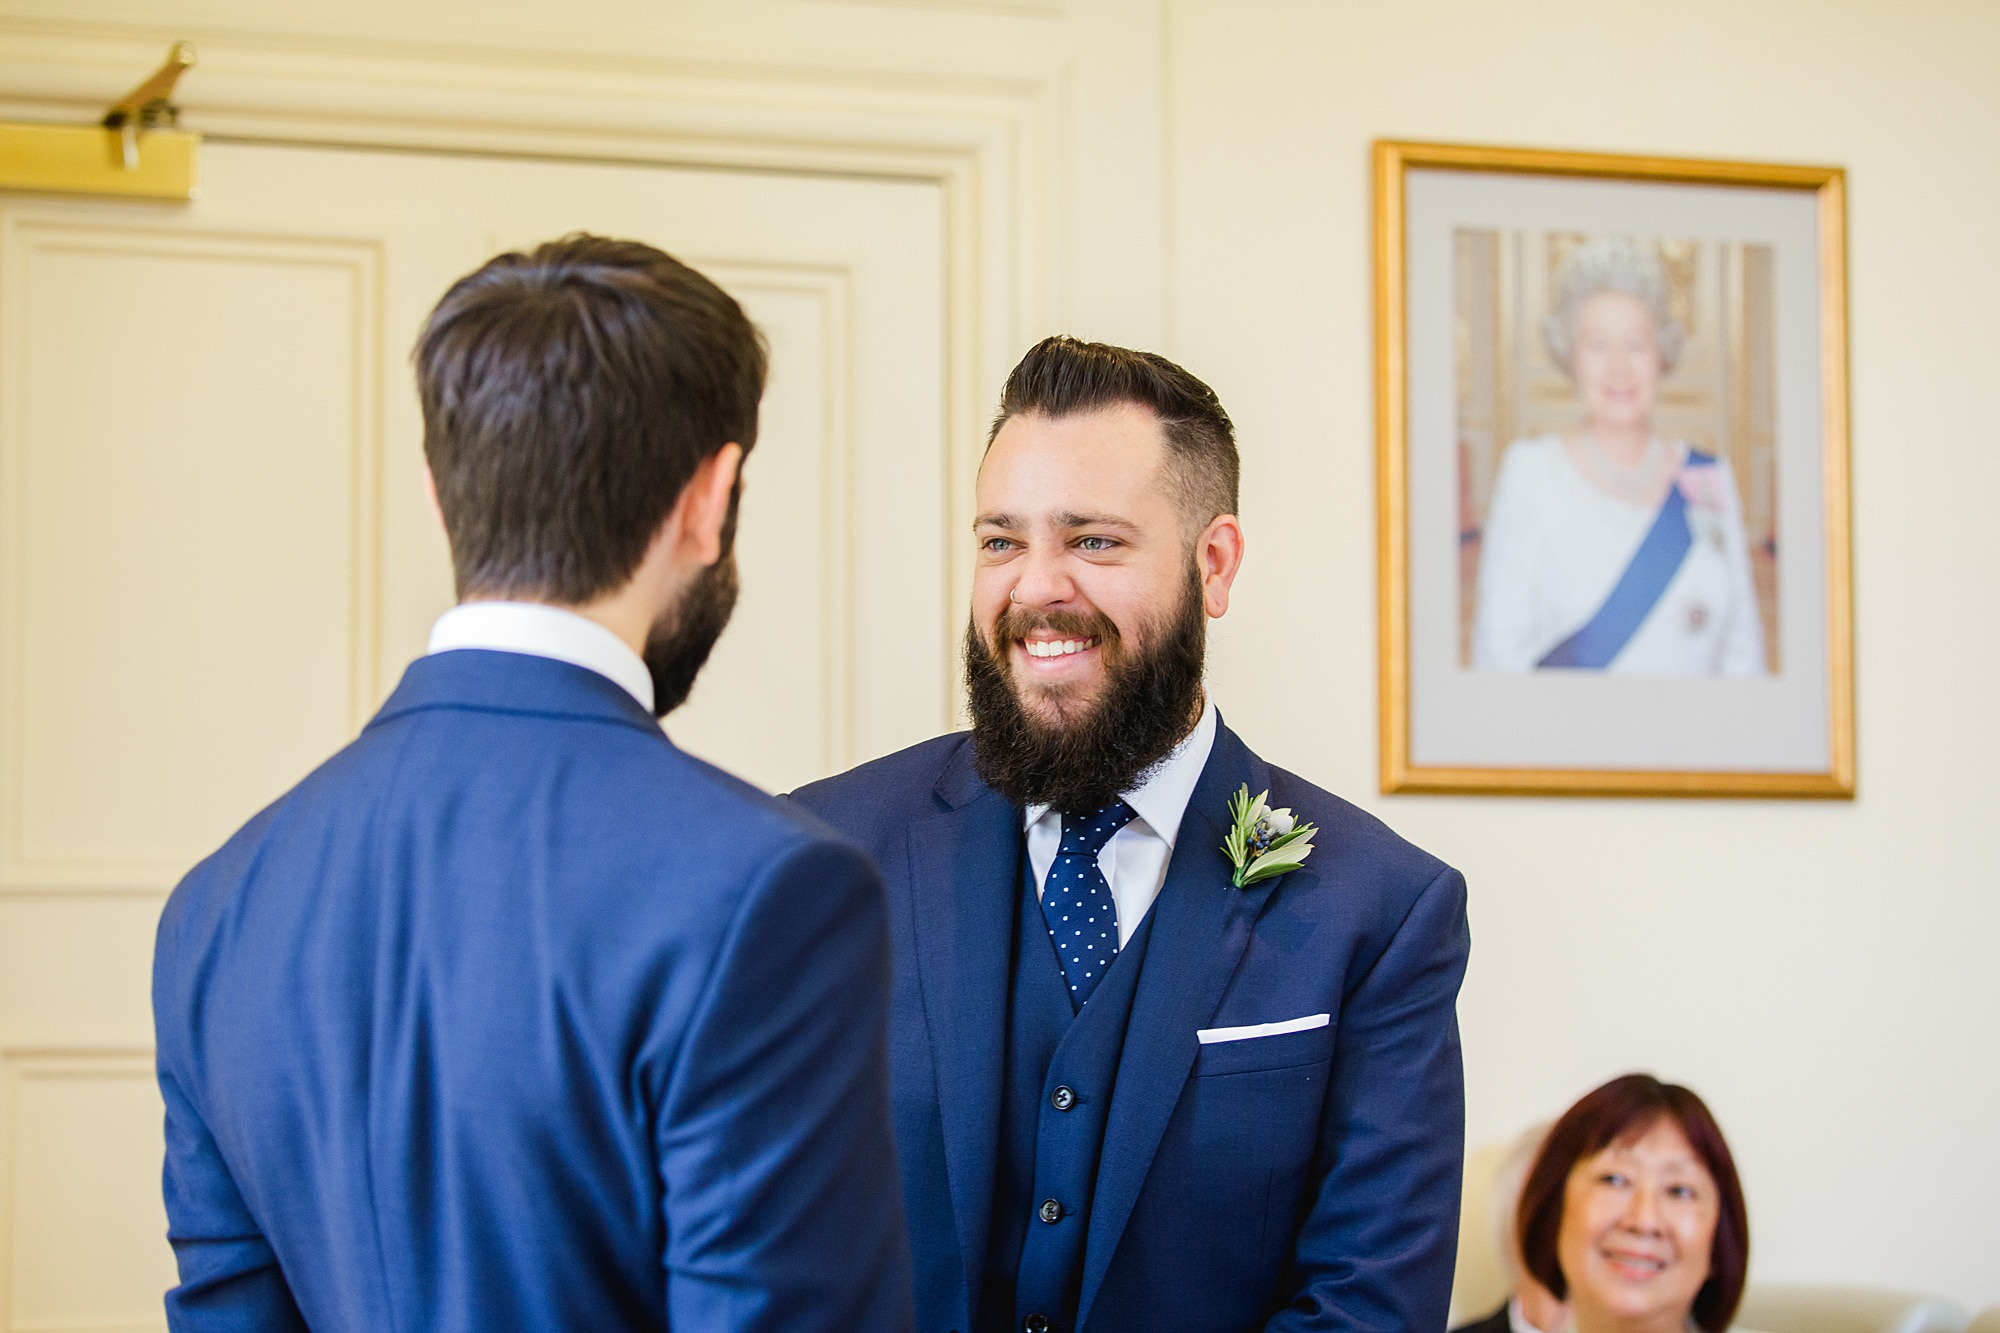 shaw house wedding from and best man laugh together